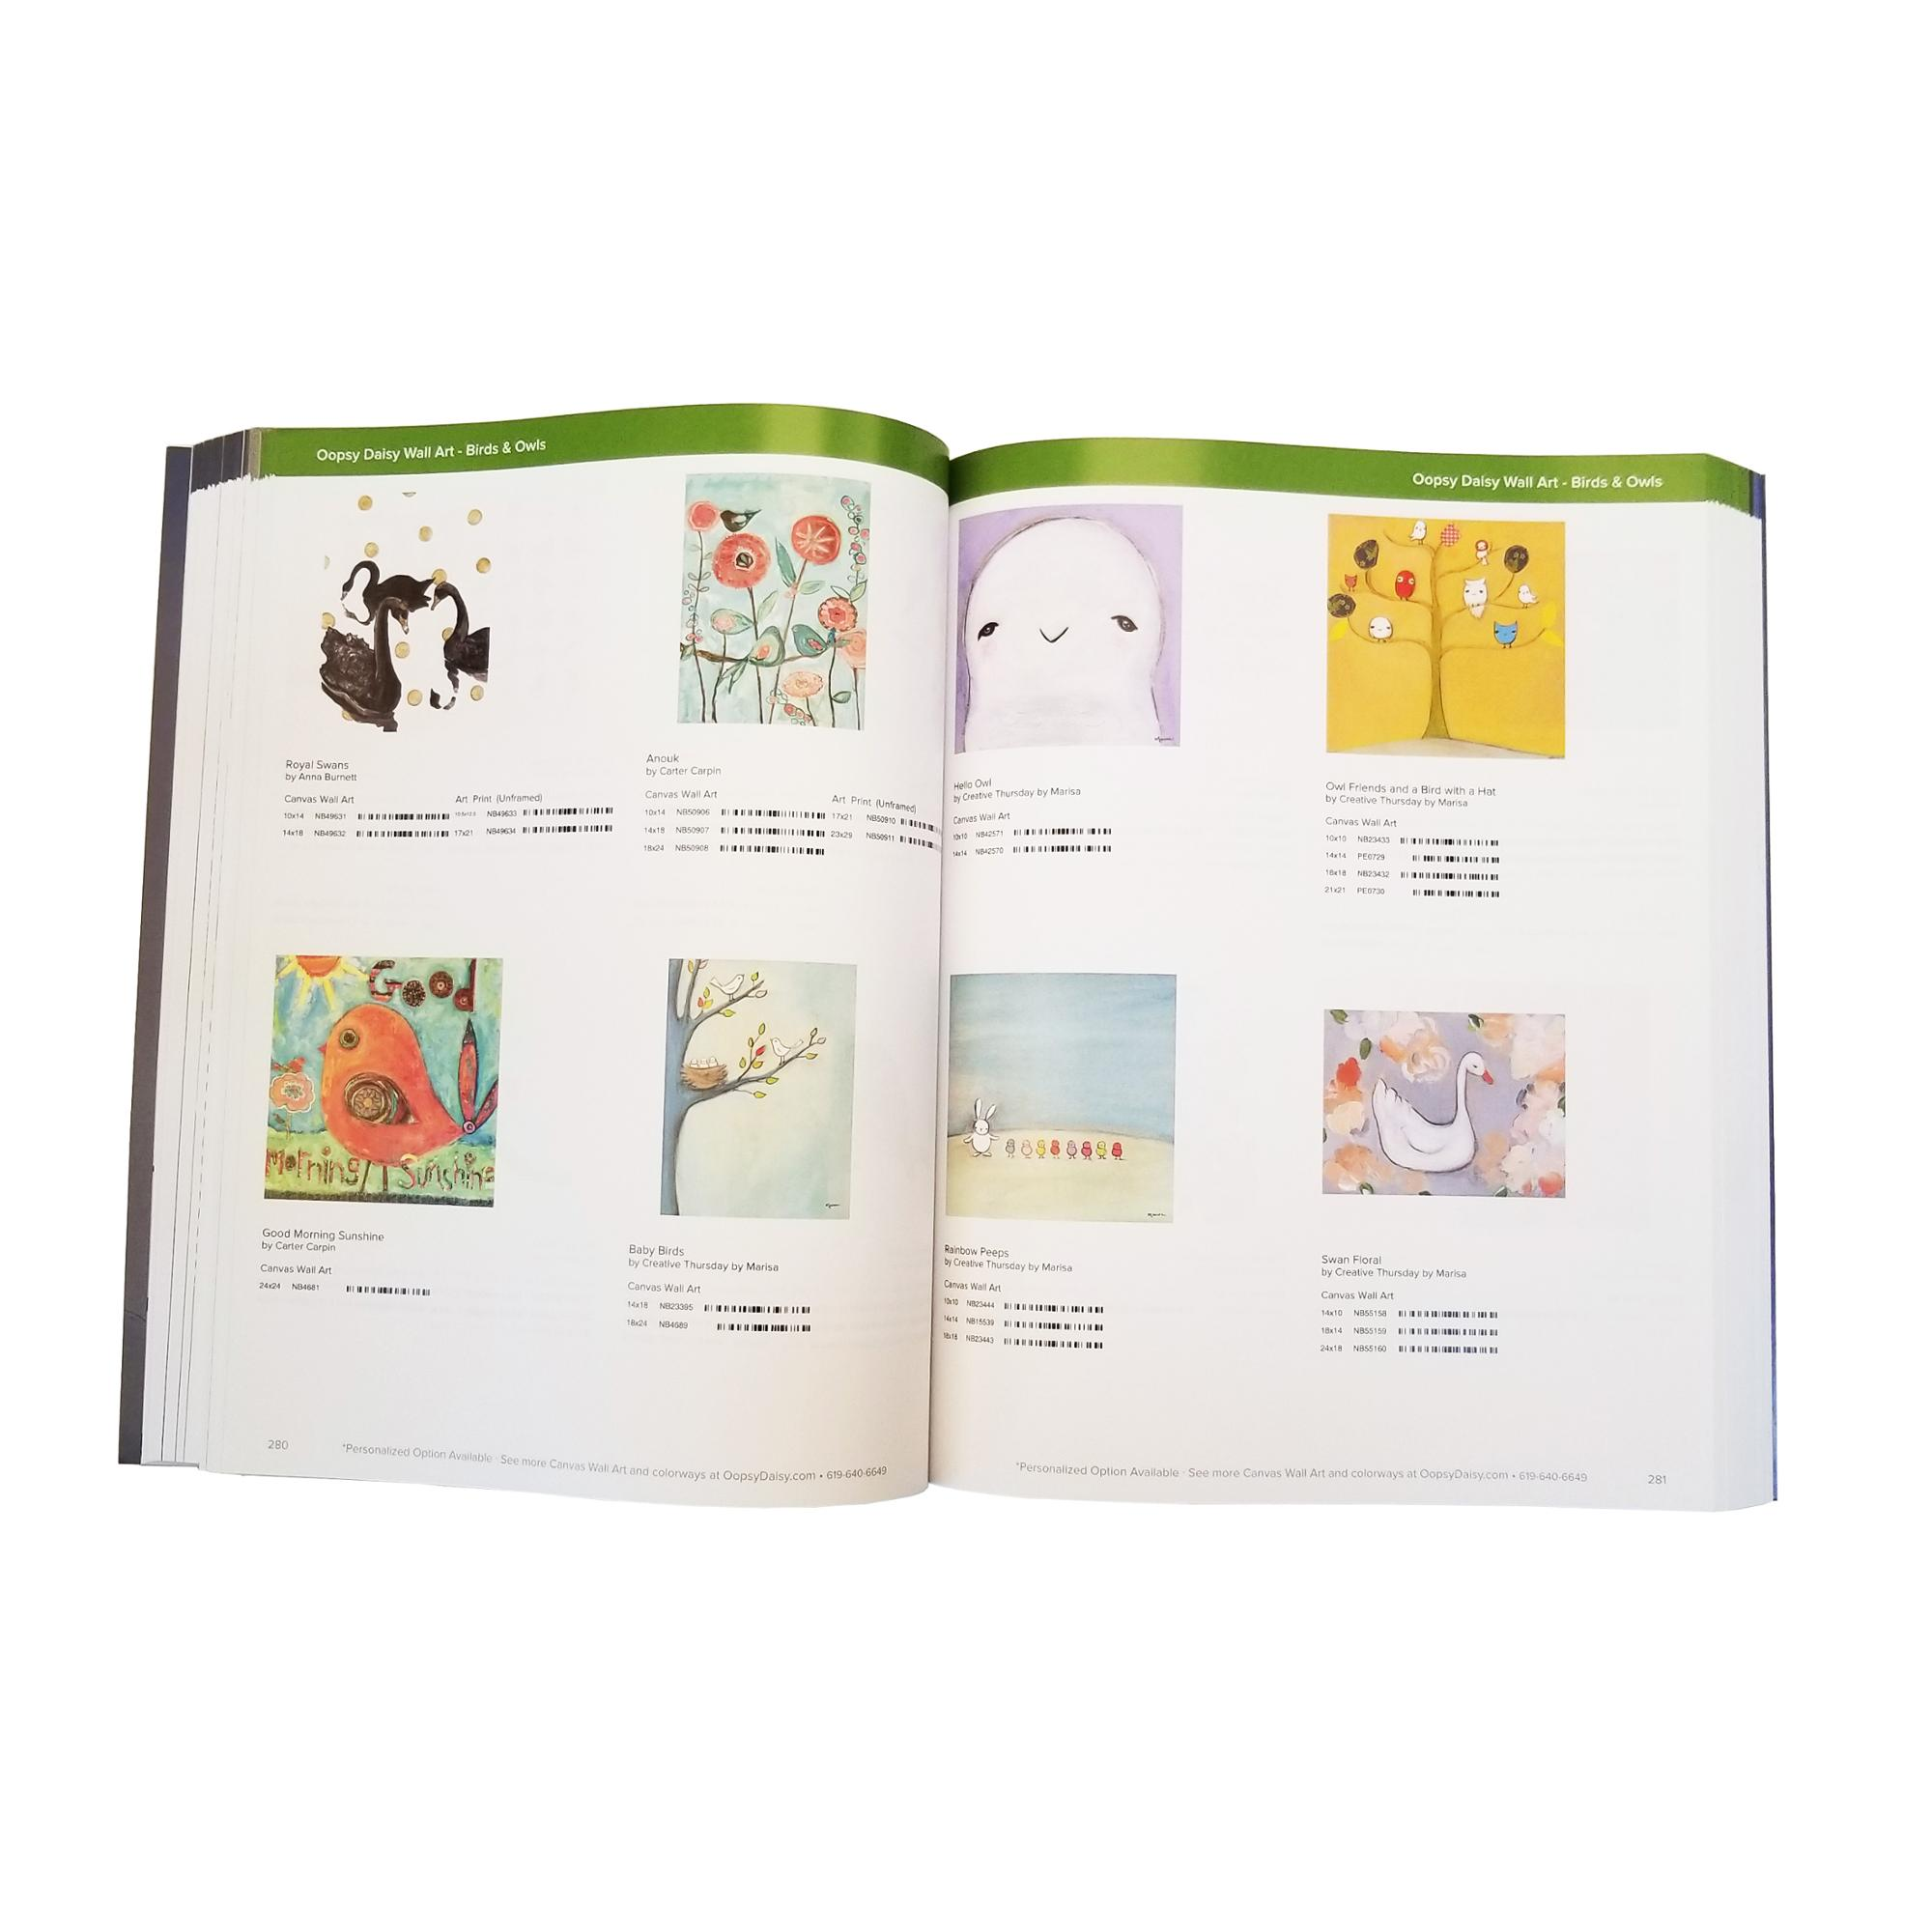 Perfect Binding Softcover Book Printing,Full Color Books Printing,Custom softcover books printing